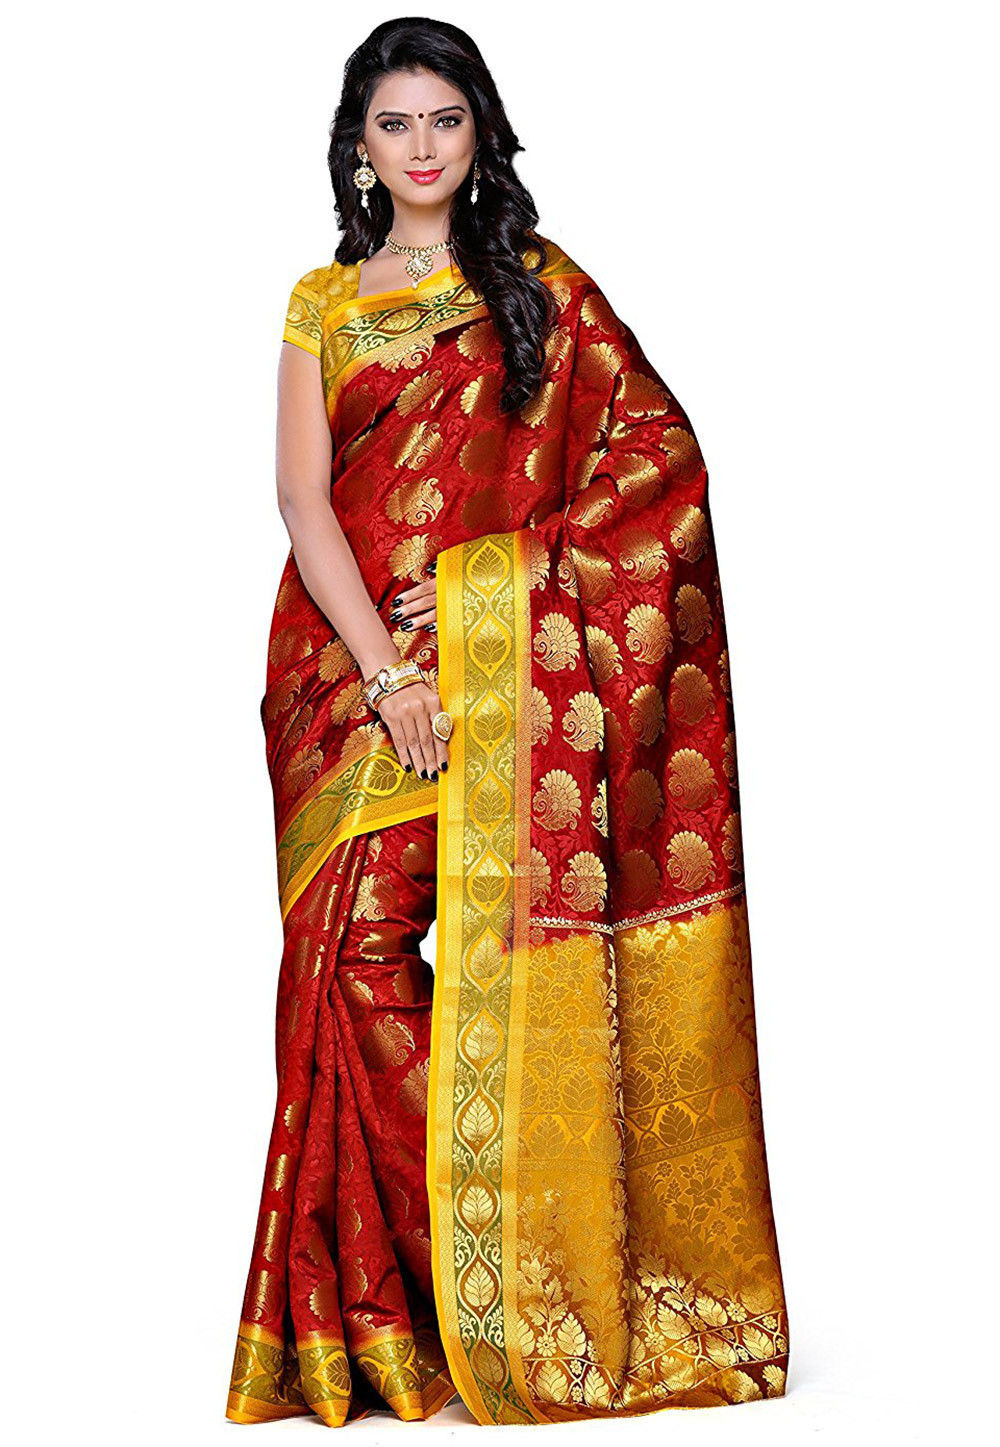 Woven Kanchipuram Silk Saree in Maroon